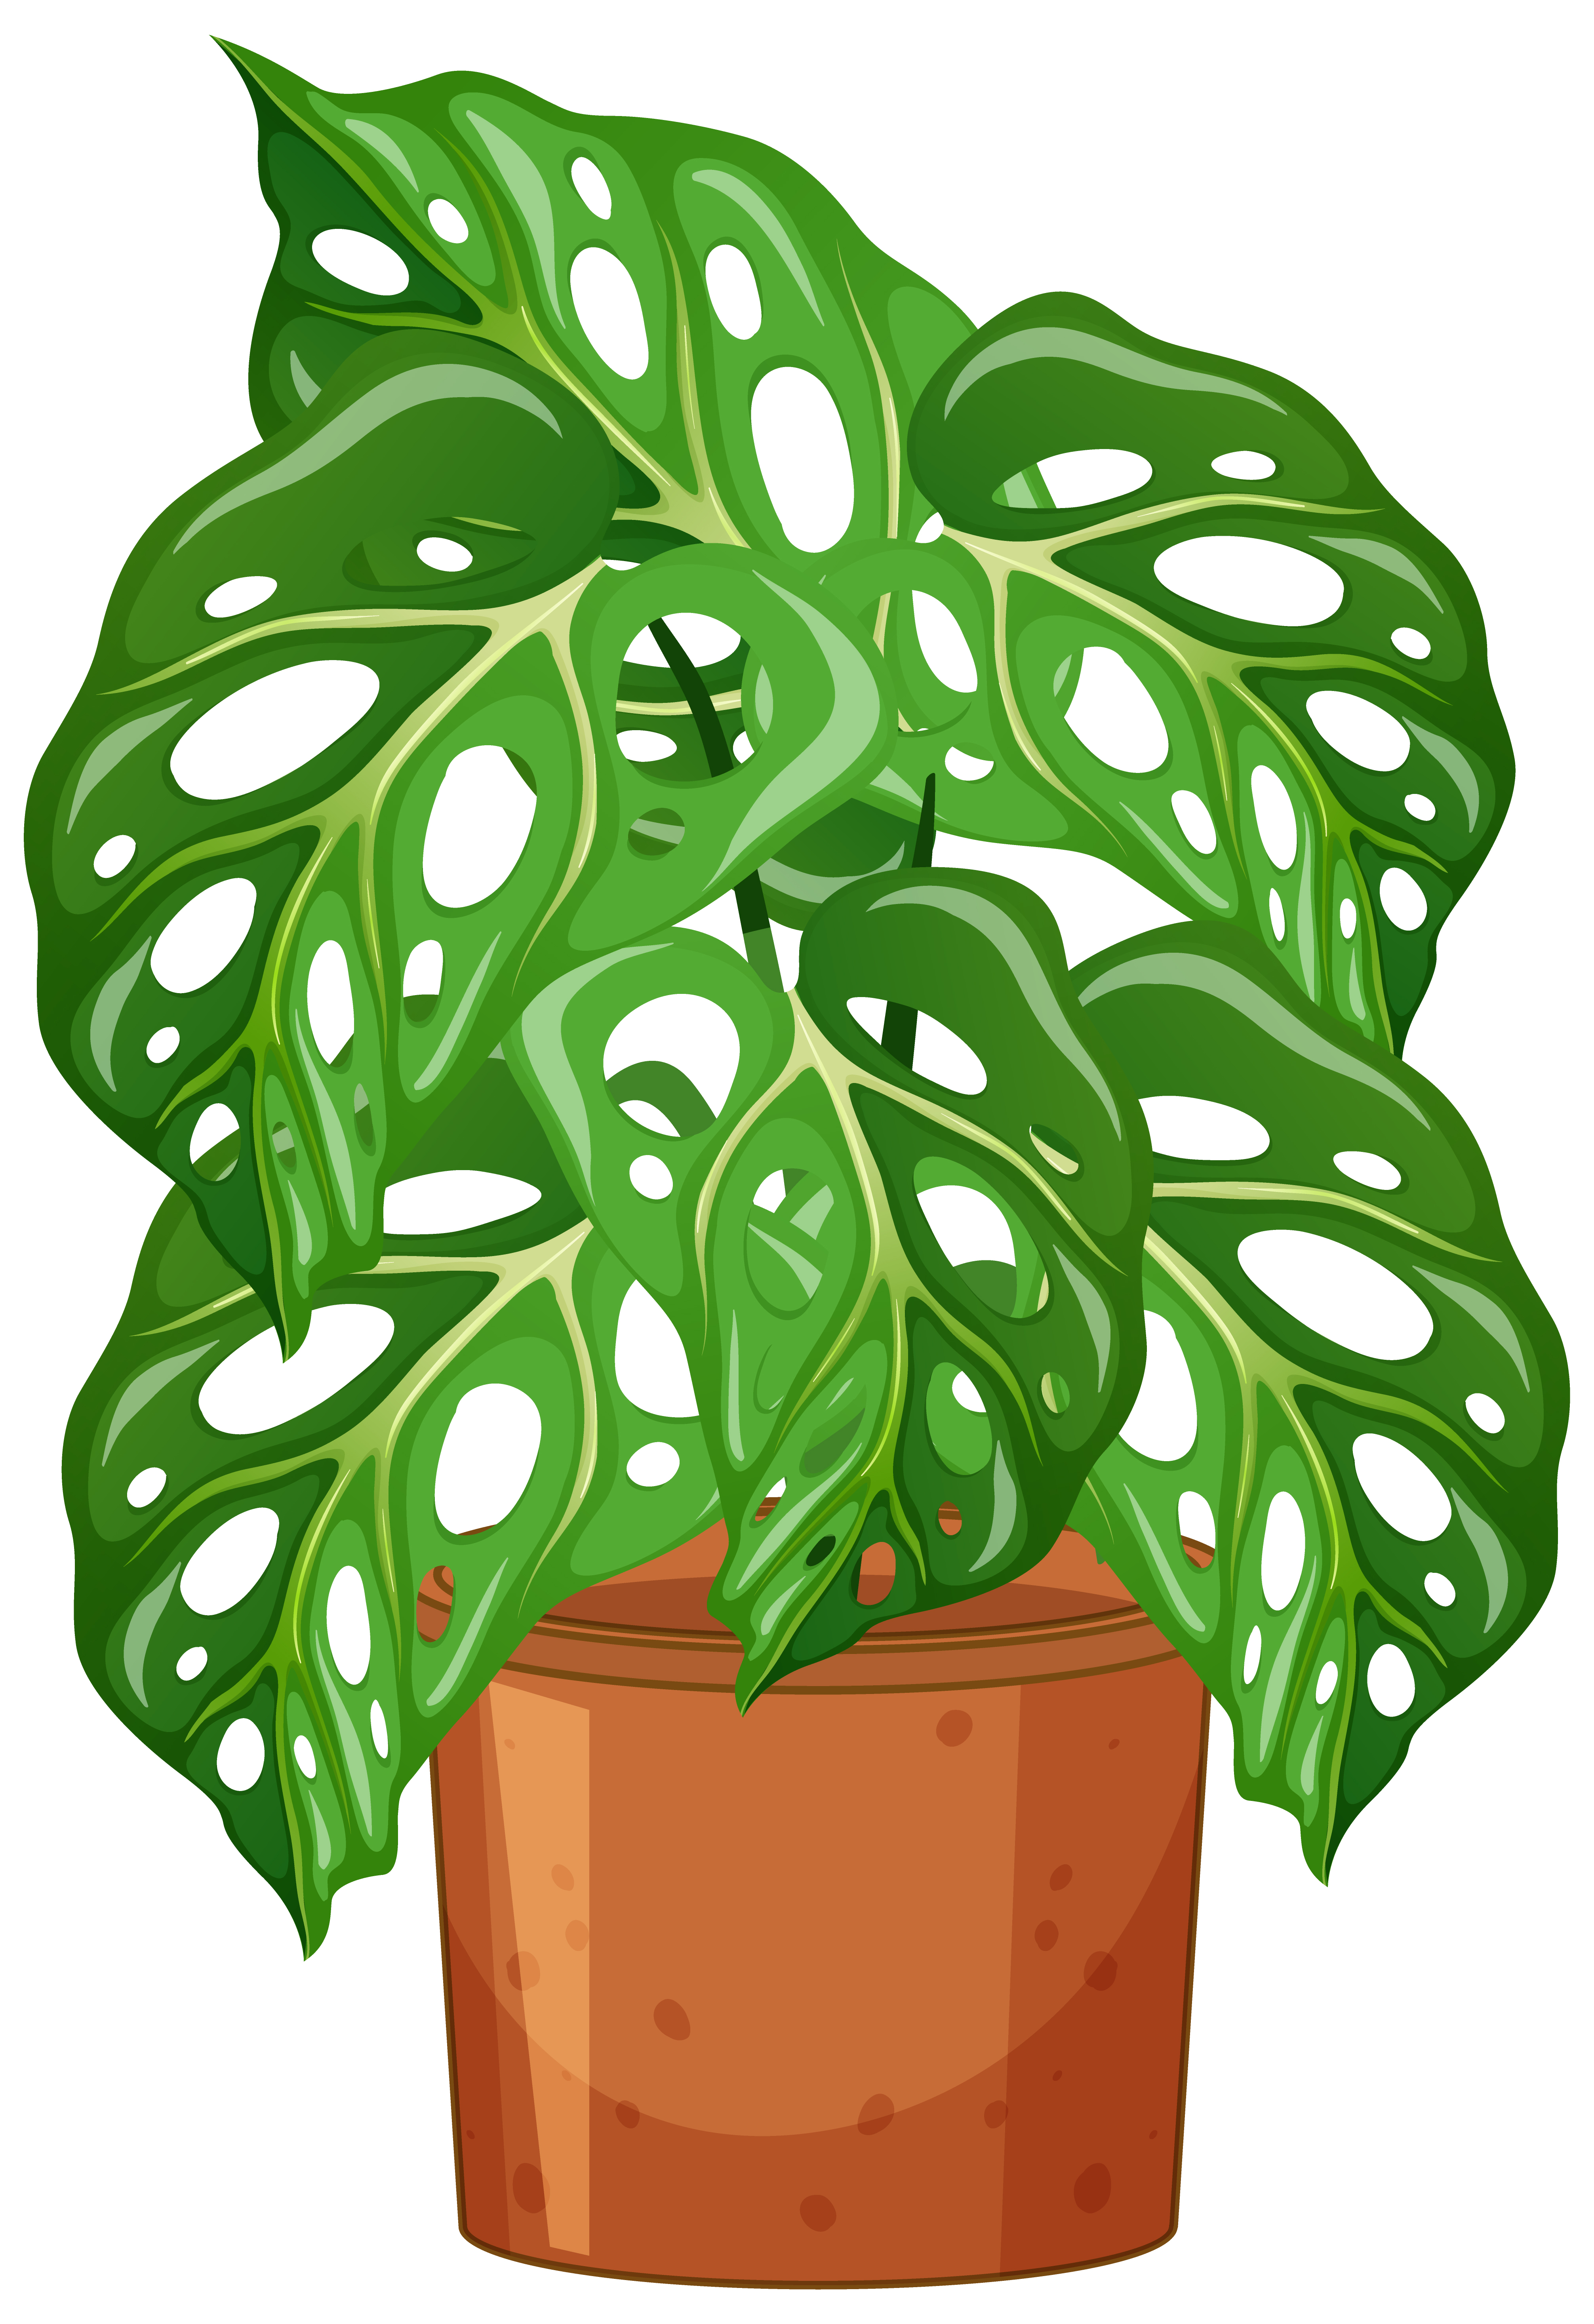 Monstera Plant In Pot Cartoon Style On White Background Download Free Vectors Clipart Graphics Vector Art Summer floral tree in pot for your design. vecteezy